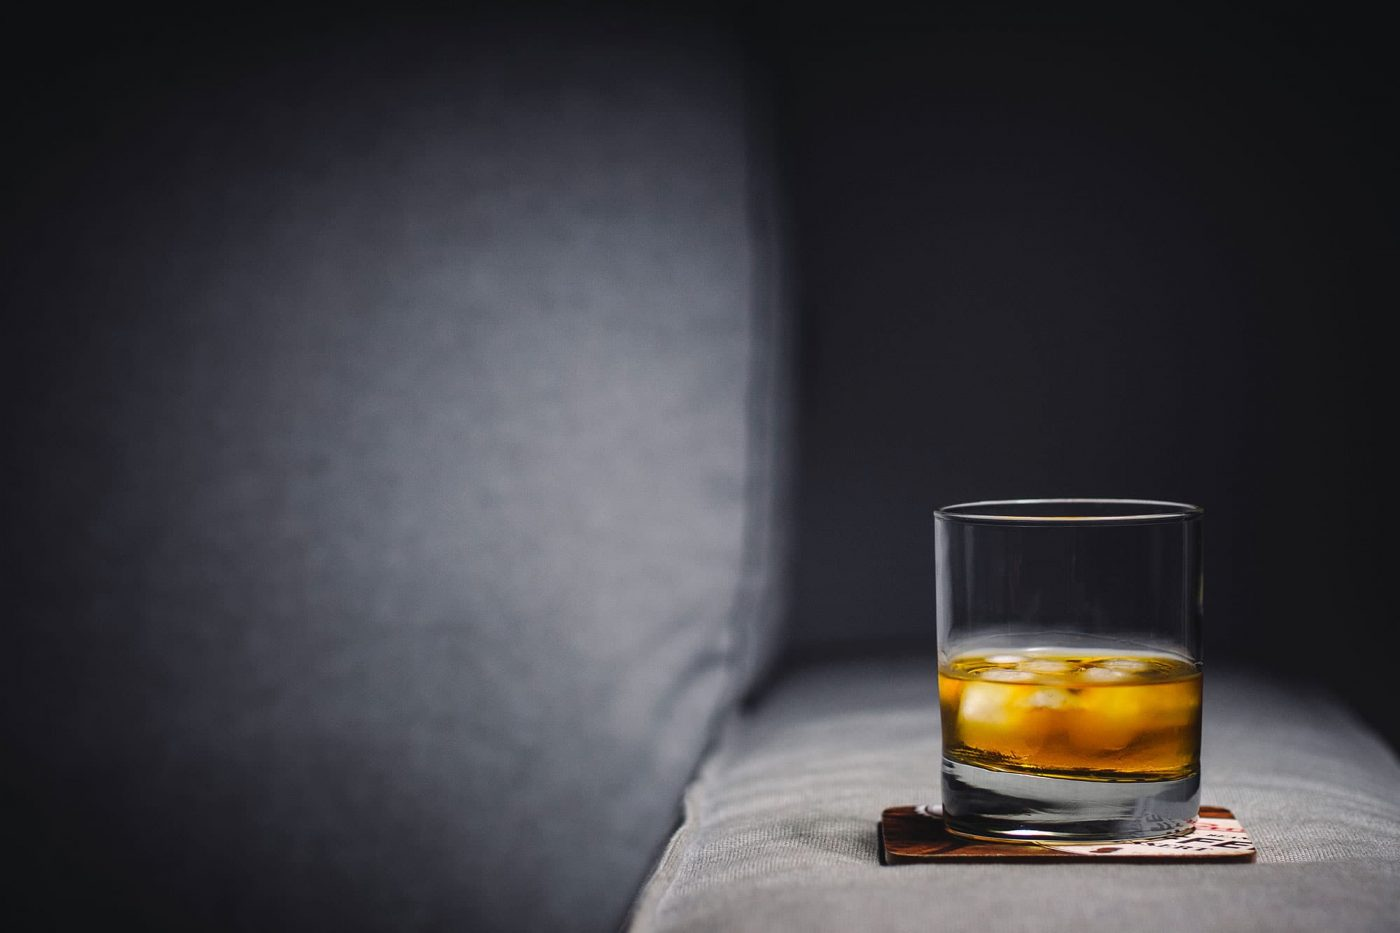 Enjoy an evening with friends or teammates and book this awesome whisky tasting in Krakow